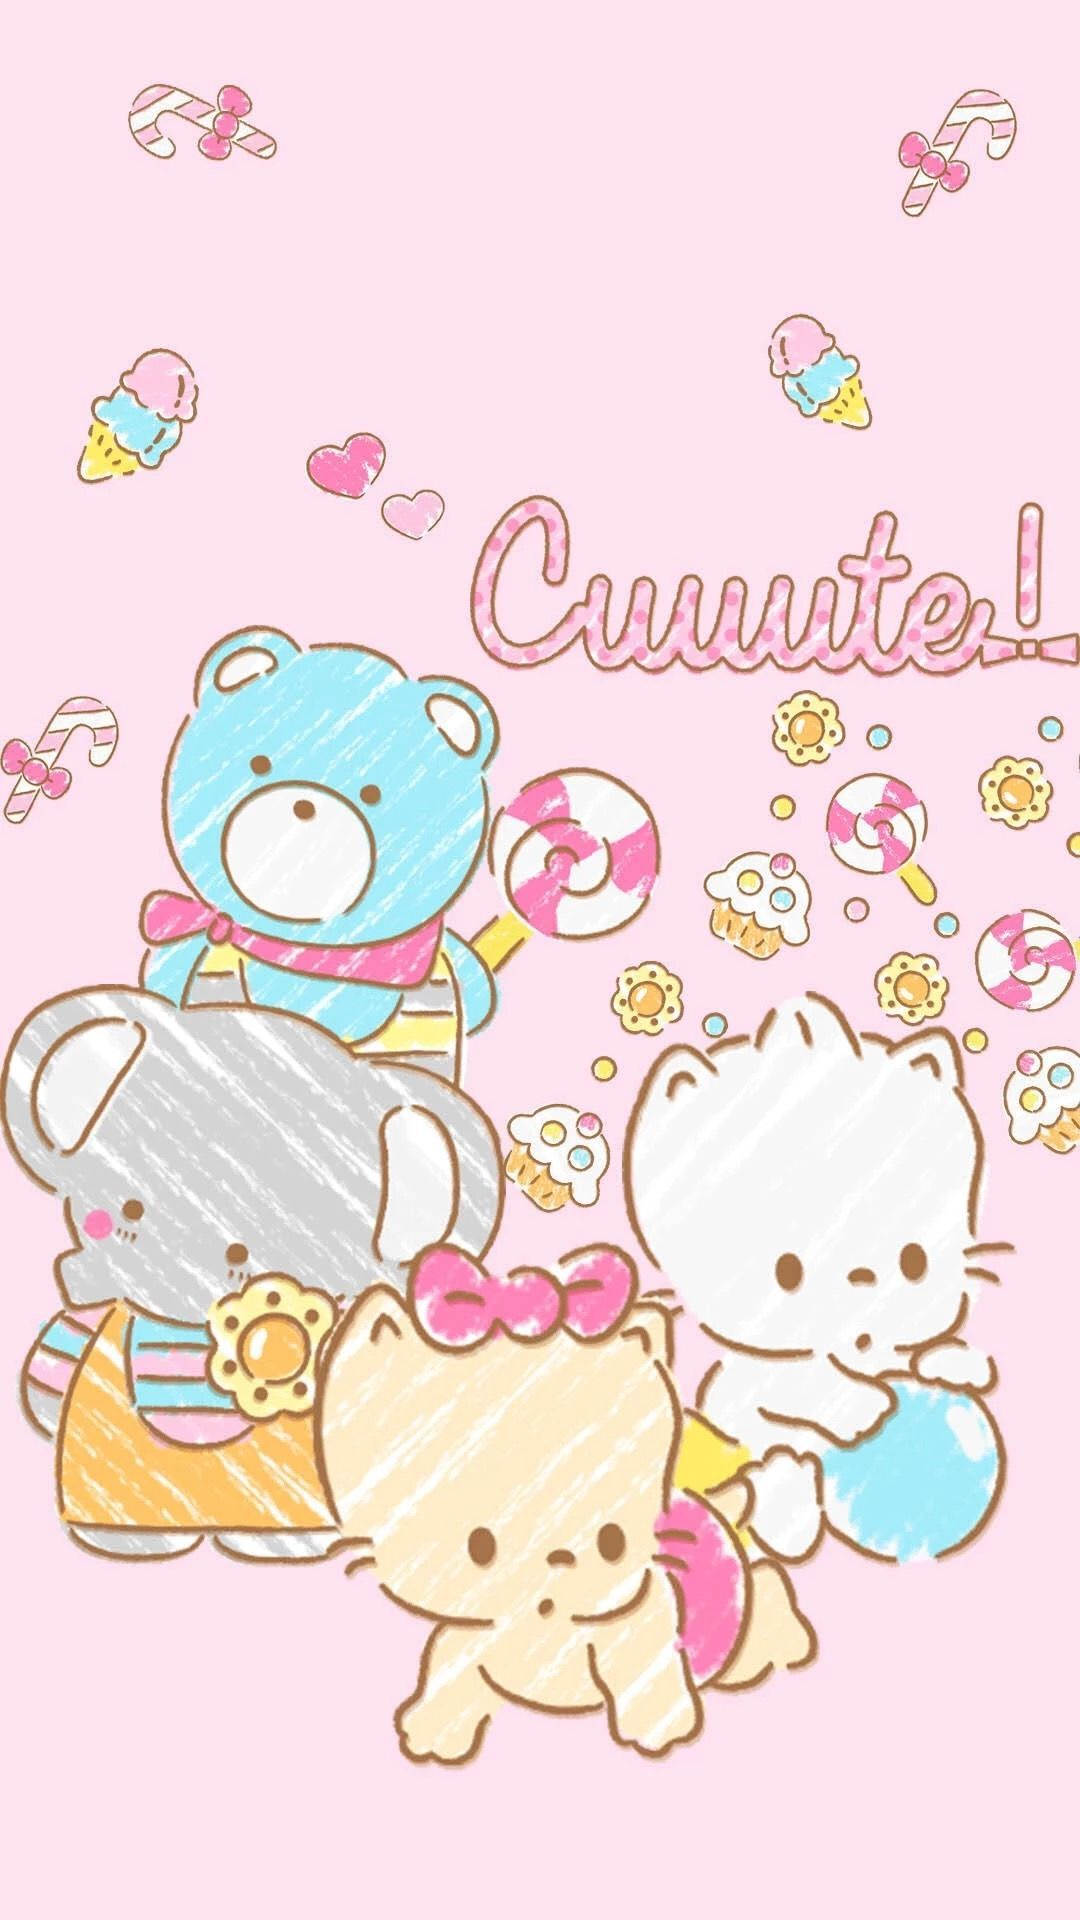 Kawaii Wallpapers Iphone Hupages Download Iphone Wallpapers Kawaii Wallpaper Wallpaper Iphone Cute Cute Wallpapers